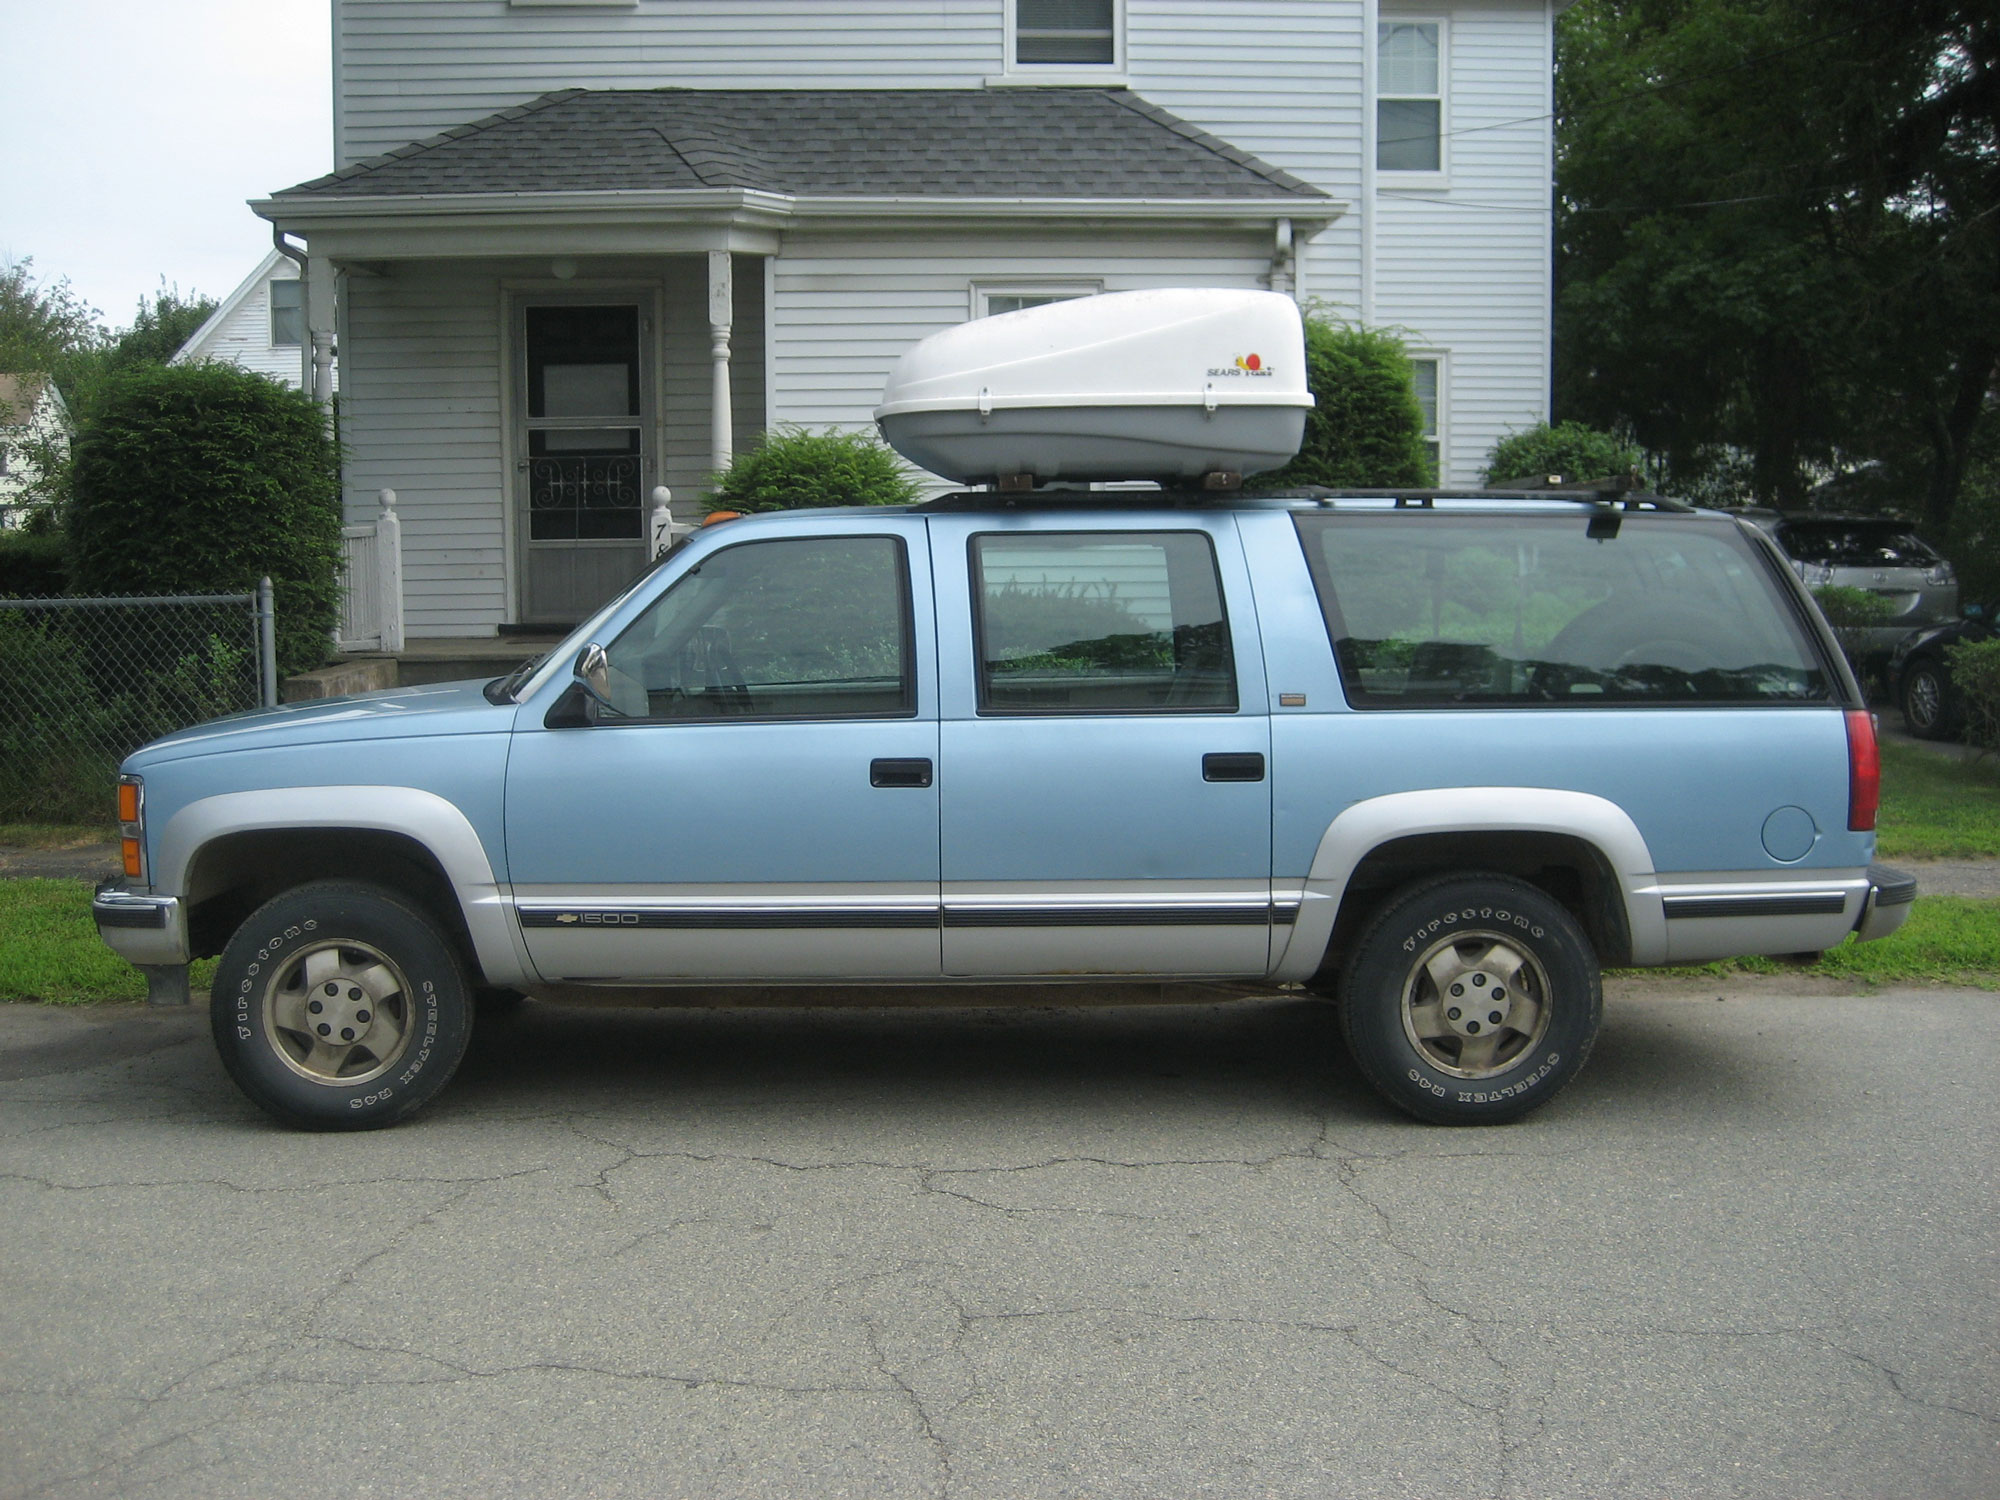 This eighth-gen 'Burb—the one that ate its transfer case—hung around for many years.